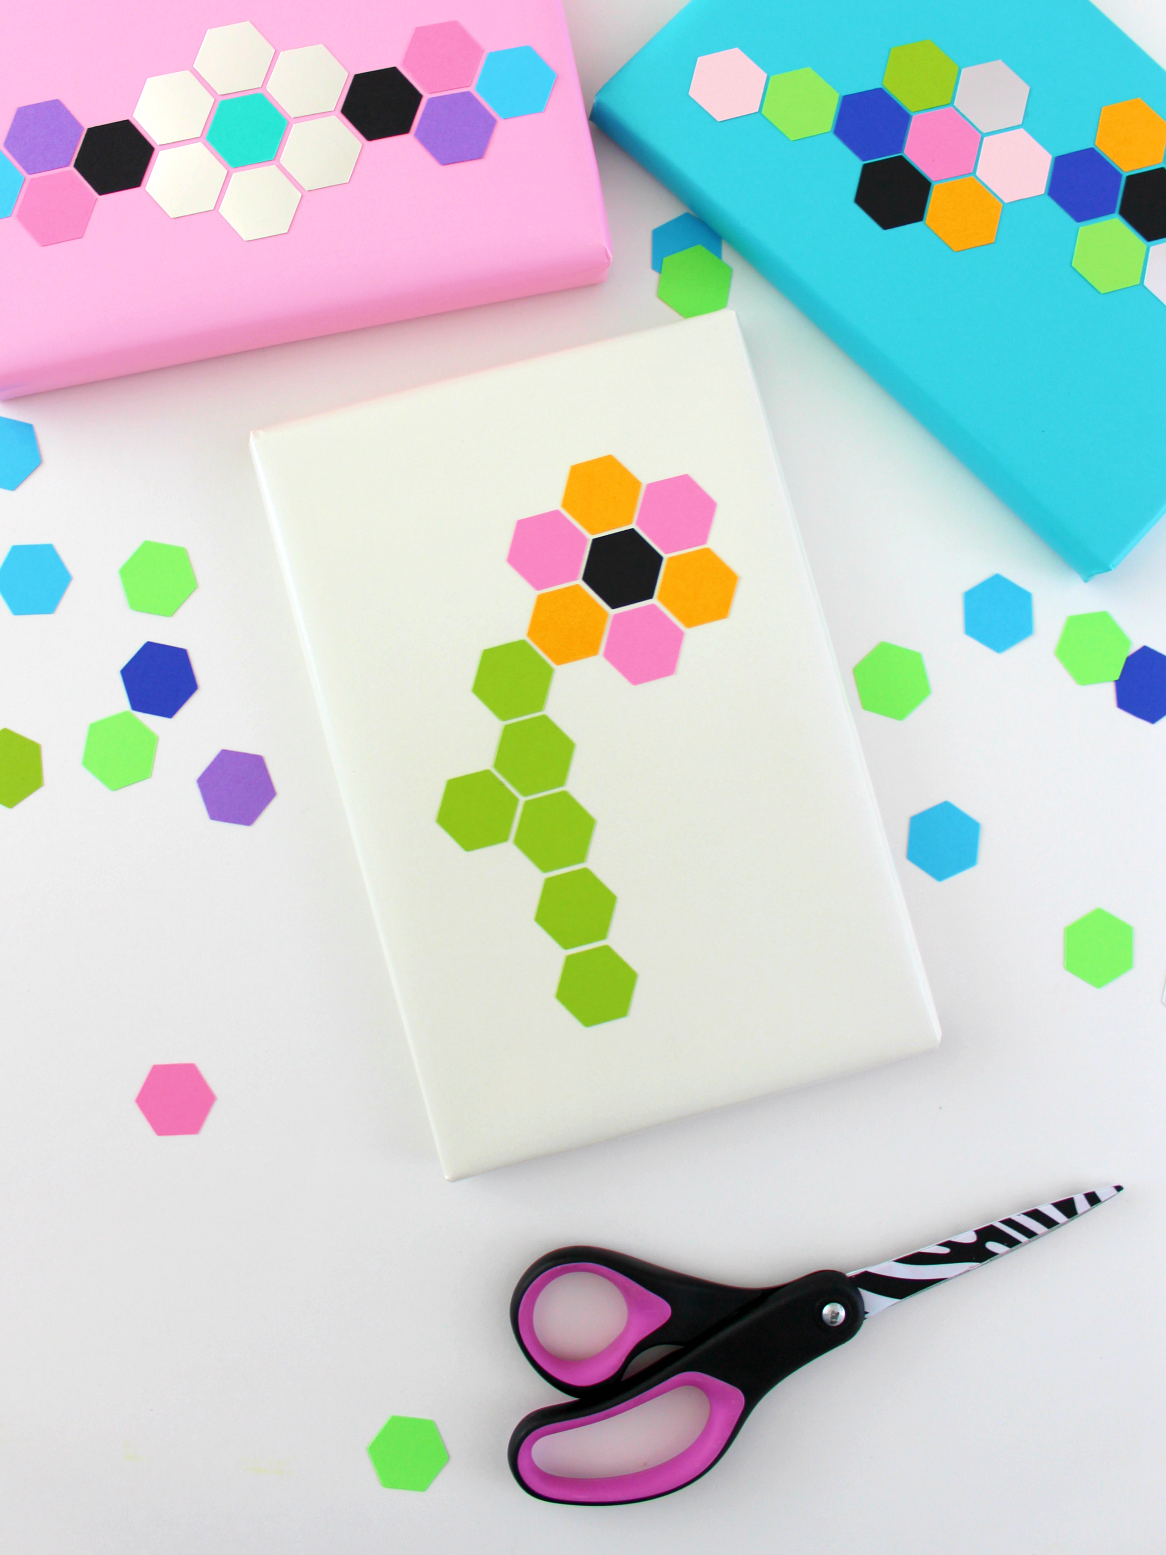 MAY PAPER CRAFT CHALLENGE DAY 19: HEXAGON WRAP